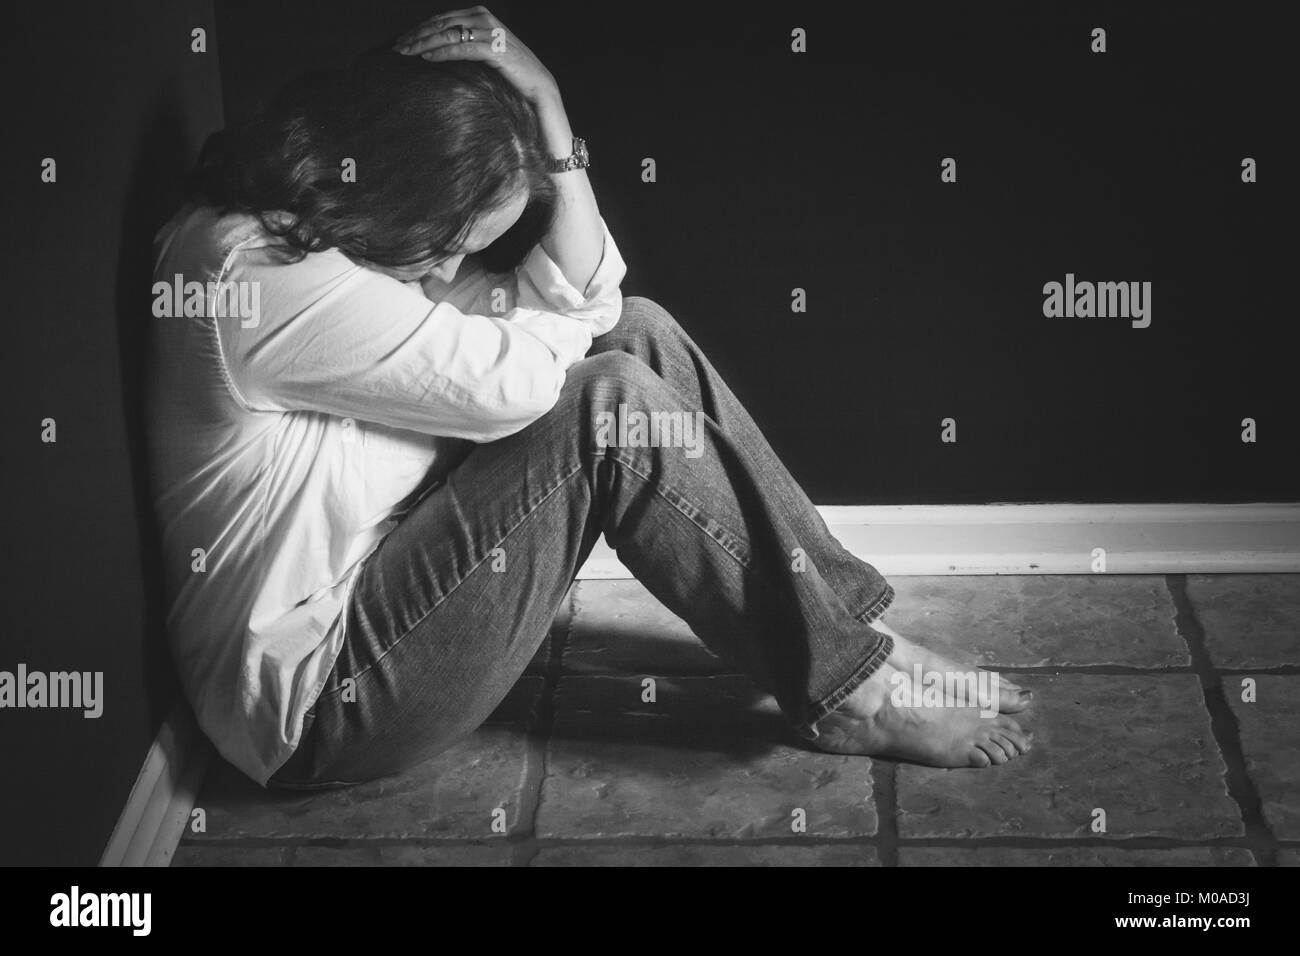 Woman in Anguish - Stock Image